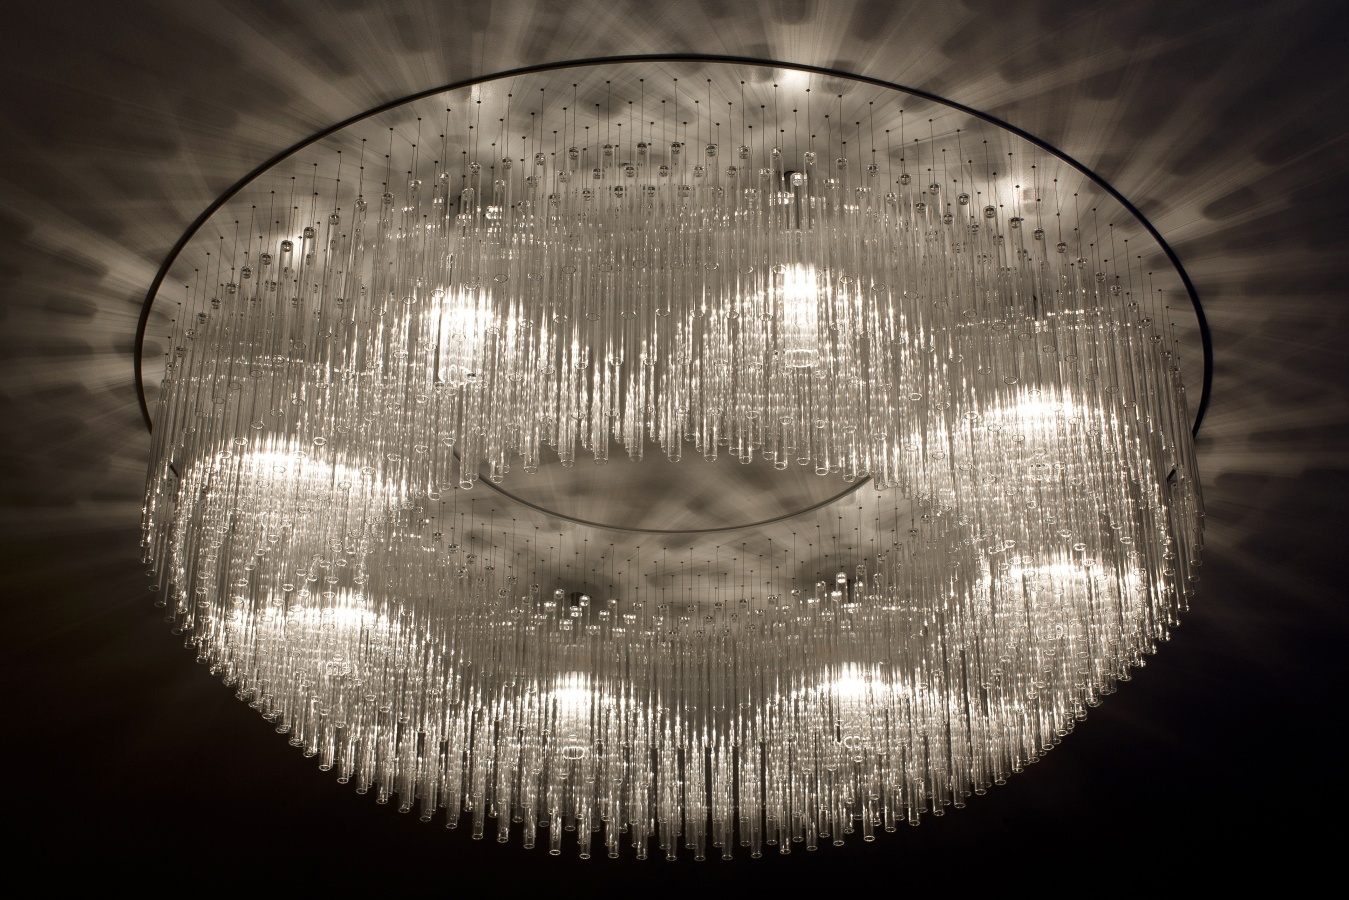 George Singer Modern Chandeliers And Lighting Installations One Thousand Chandelier Photo 5 Www Georgesinger Co Uk